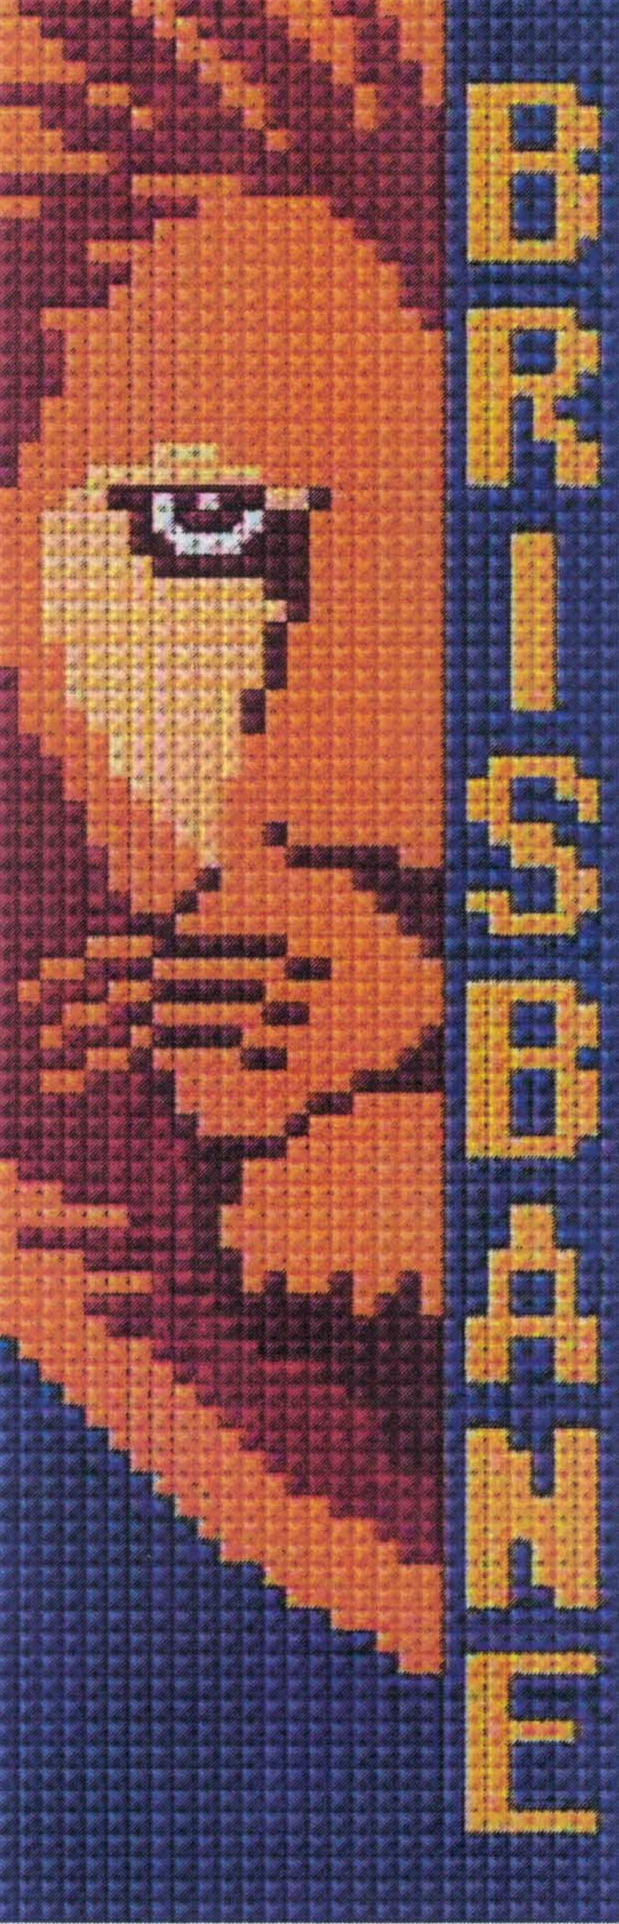 Brisbane Lions AFL Logo Cross Stitch Design for a Bookmark - stitchaphoto